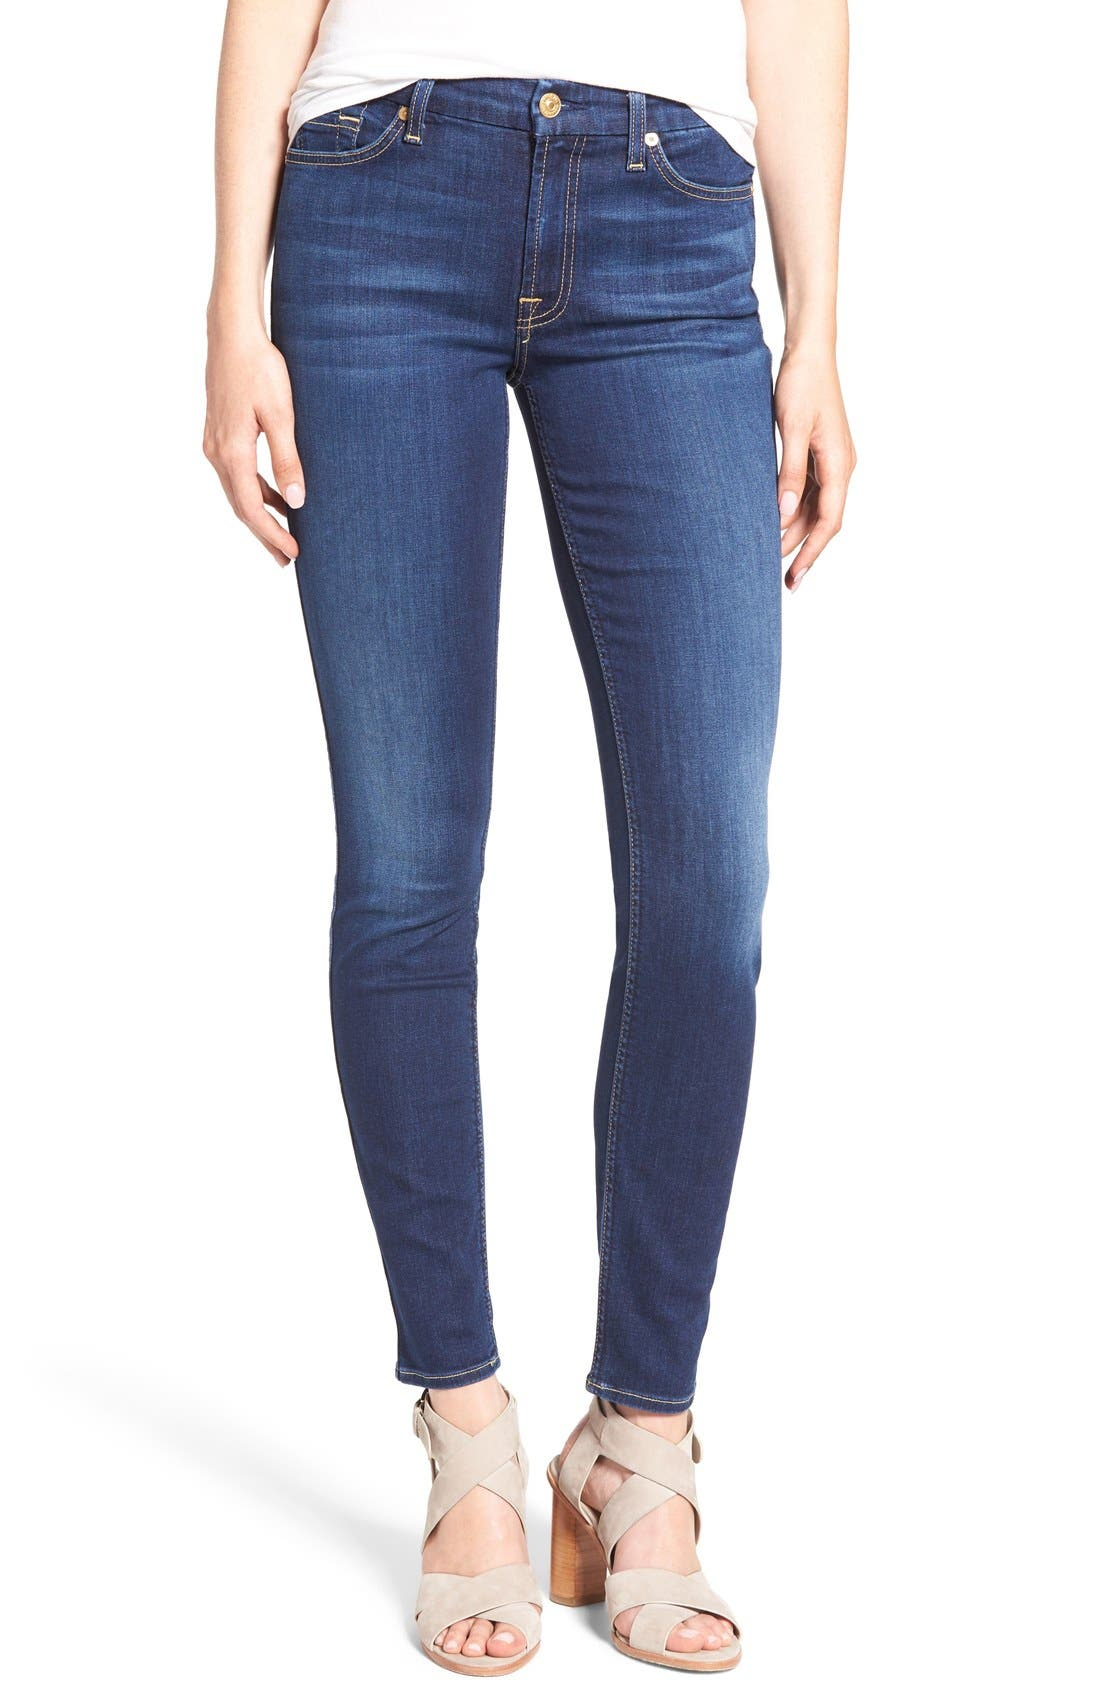 b(air) Skinny Jeans,                             Main thumbnail 1, color,                             400